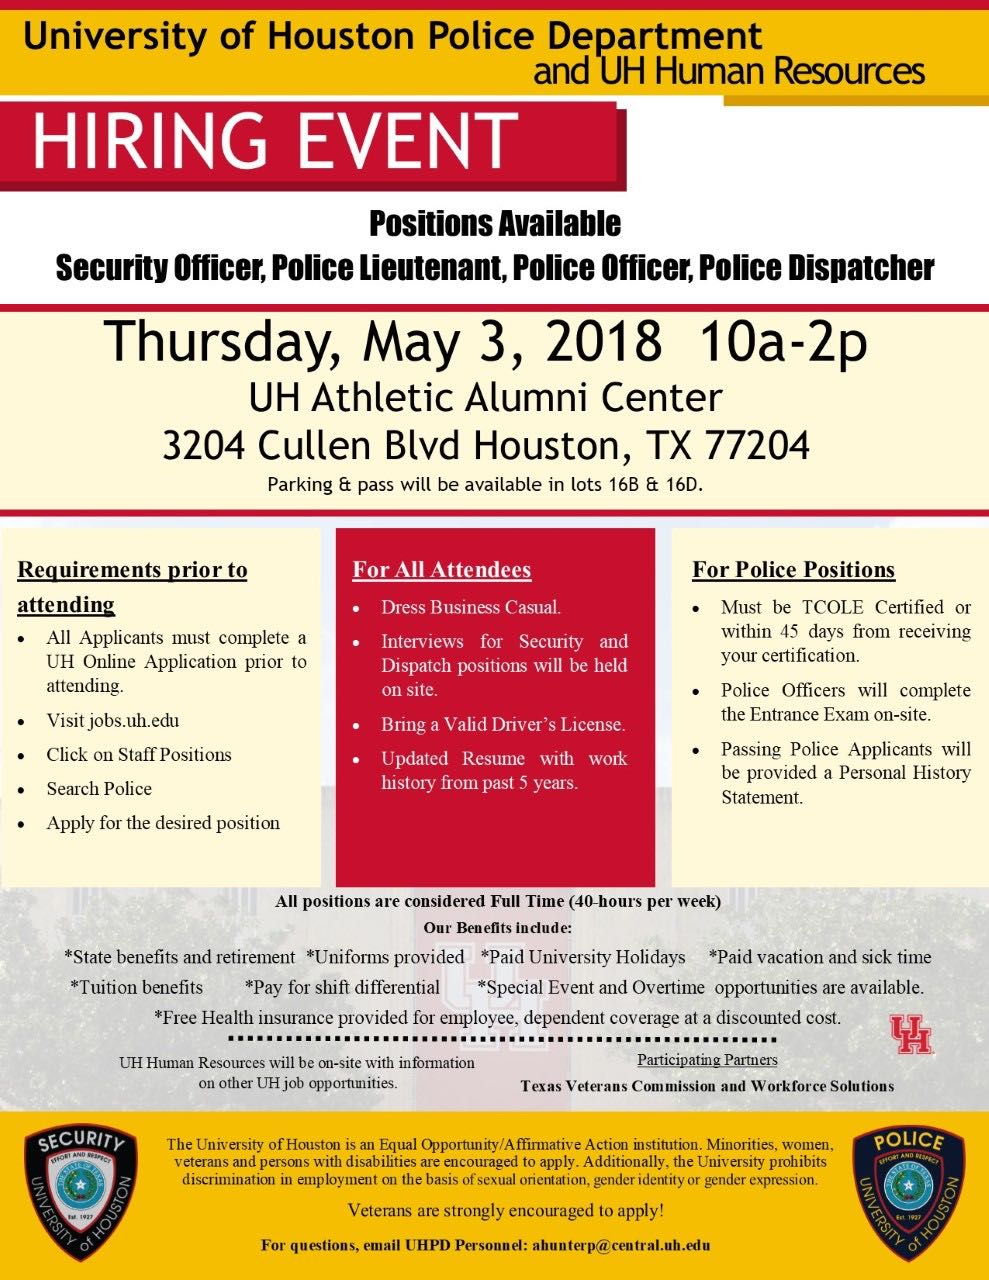 University of Houston Hiring Event